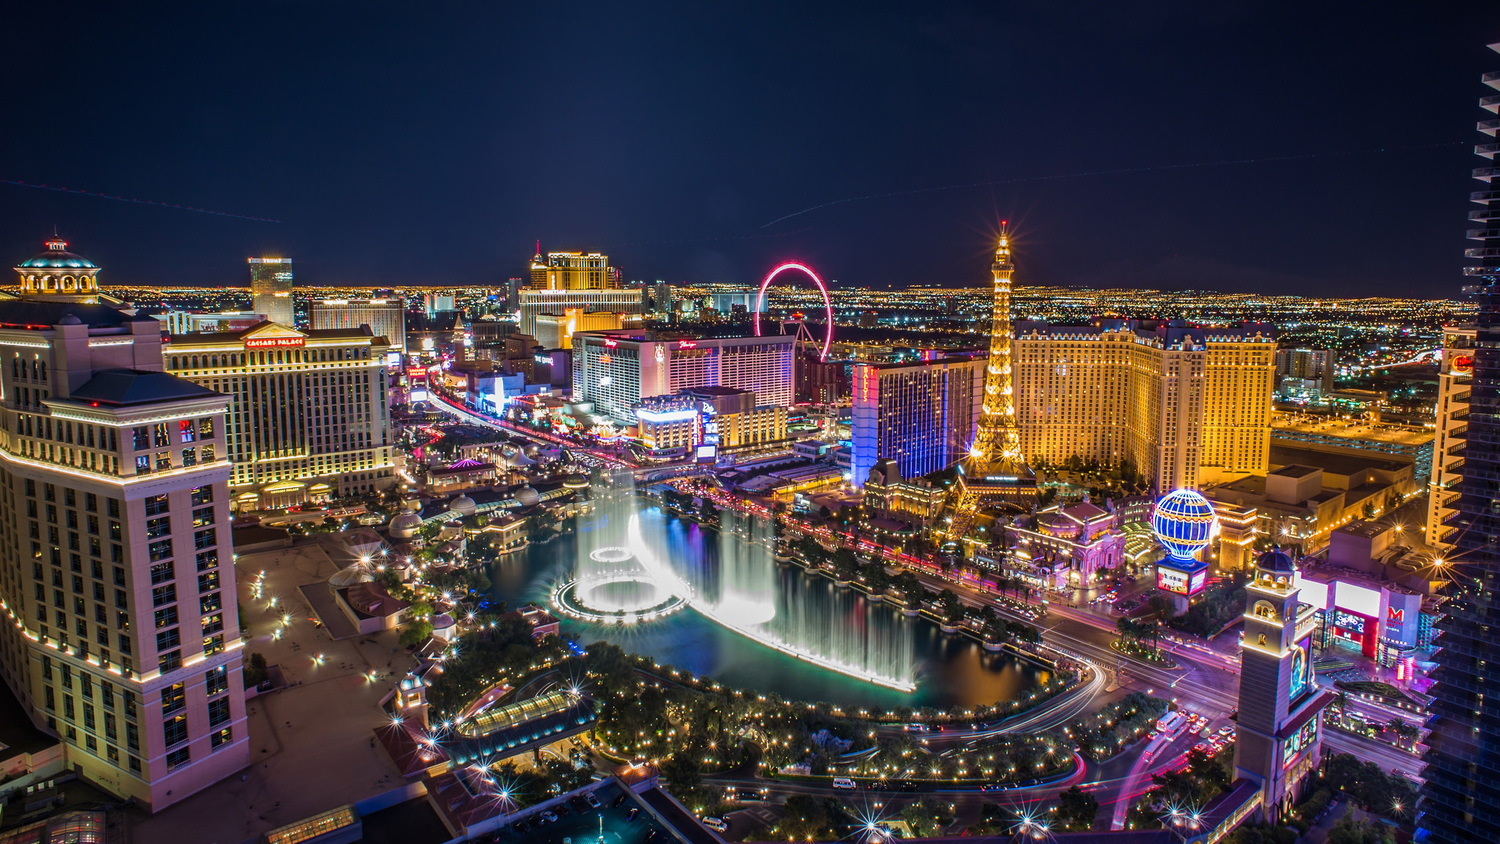 Las-Vegas-Strip-at-Night-for-Google-2.jpg